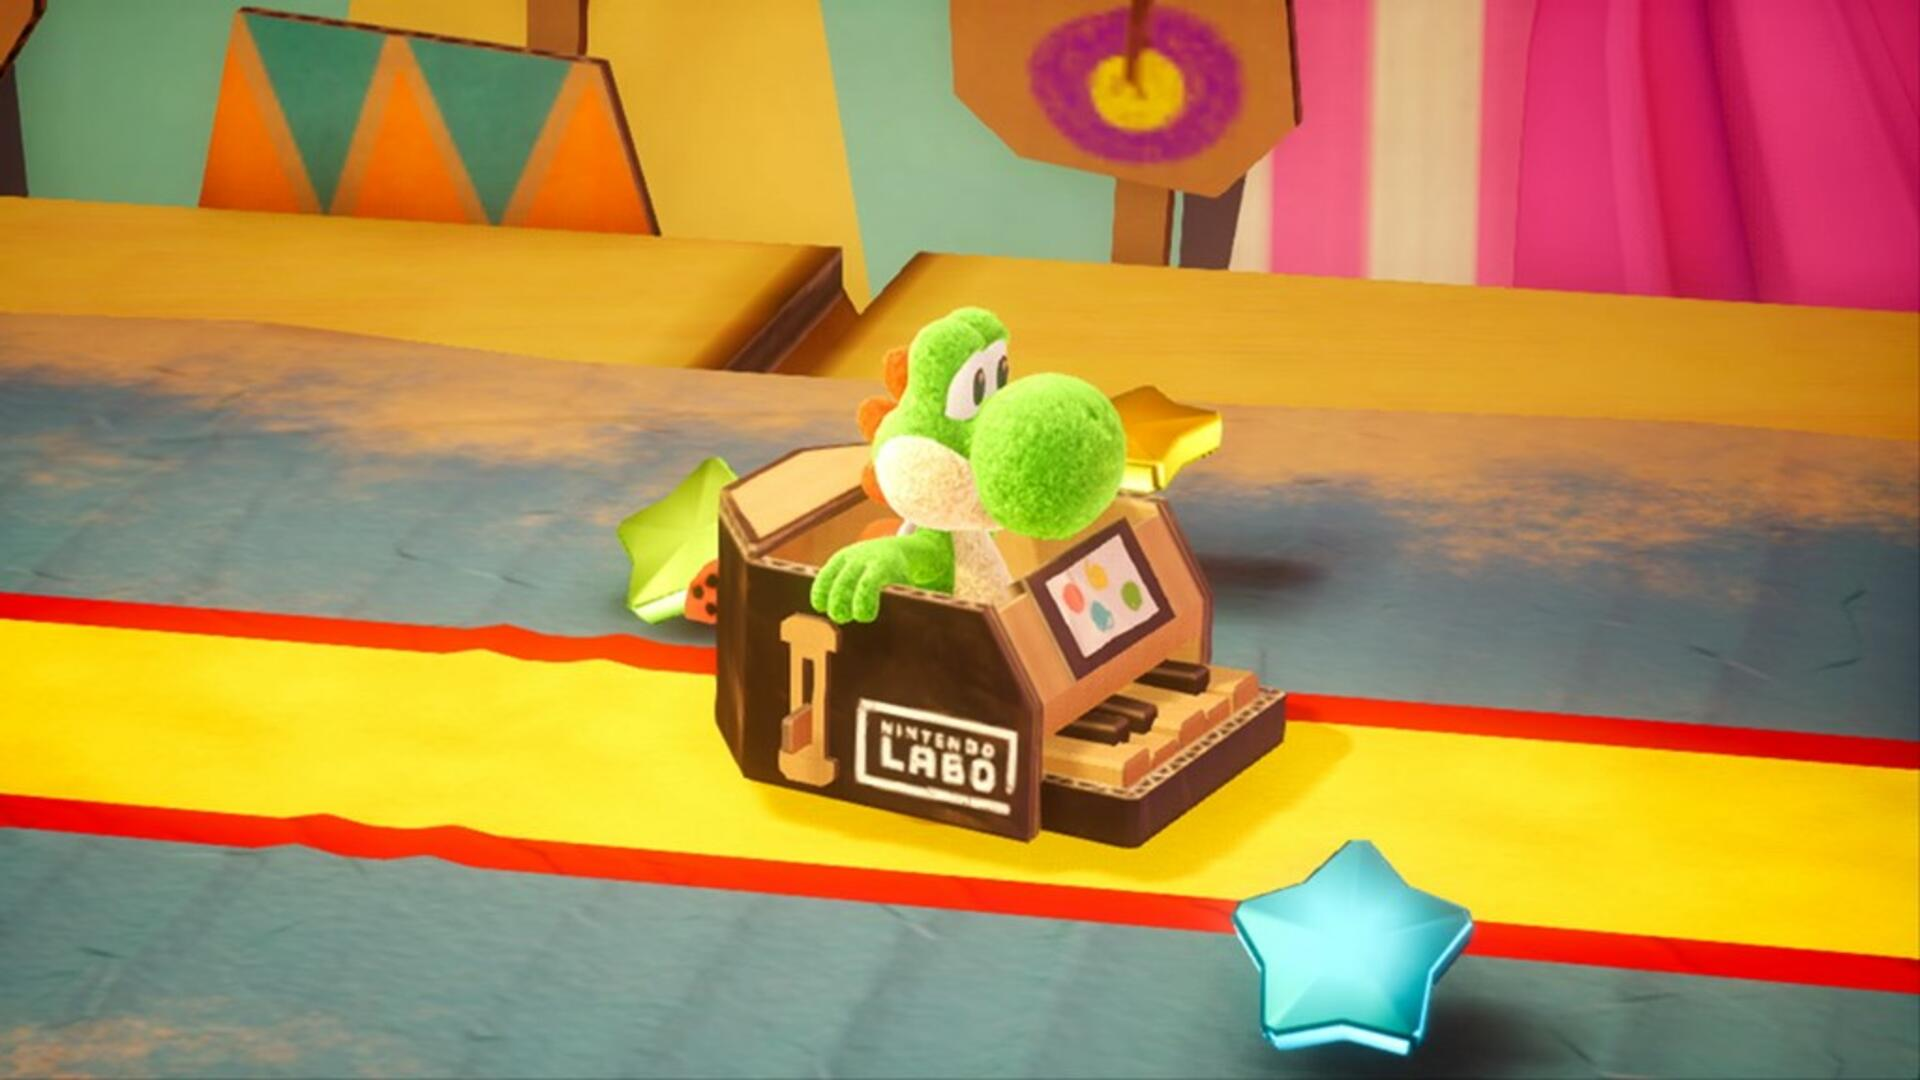 Yoshi's Crafted World Has the Cleverest Graphics I've Seen in a Game